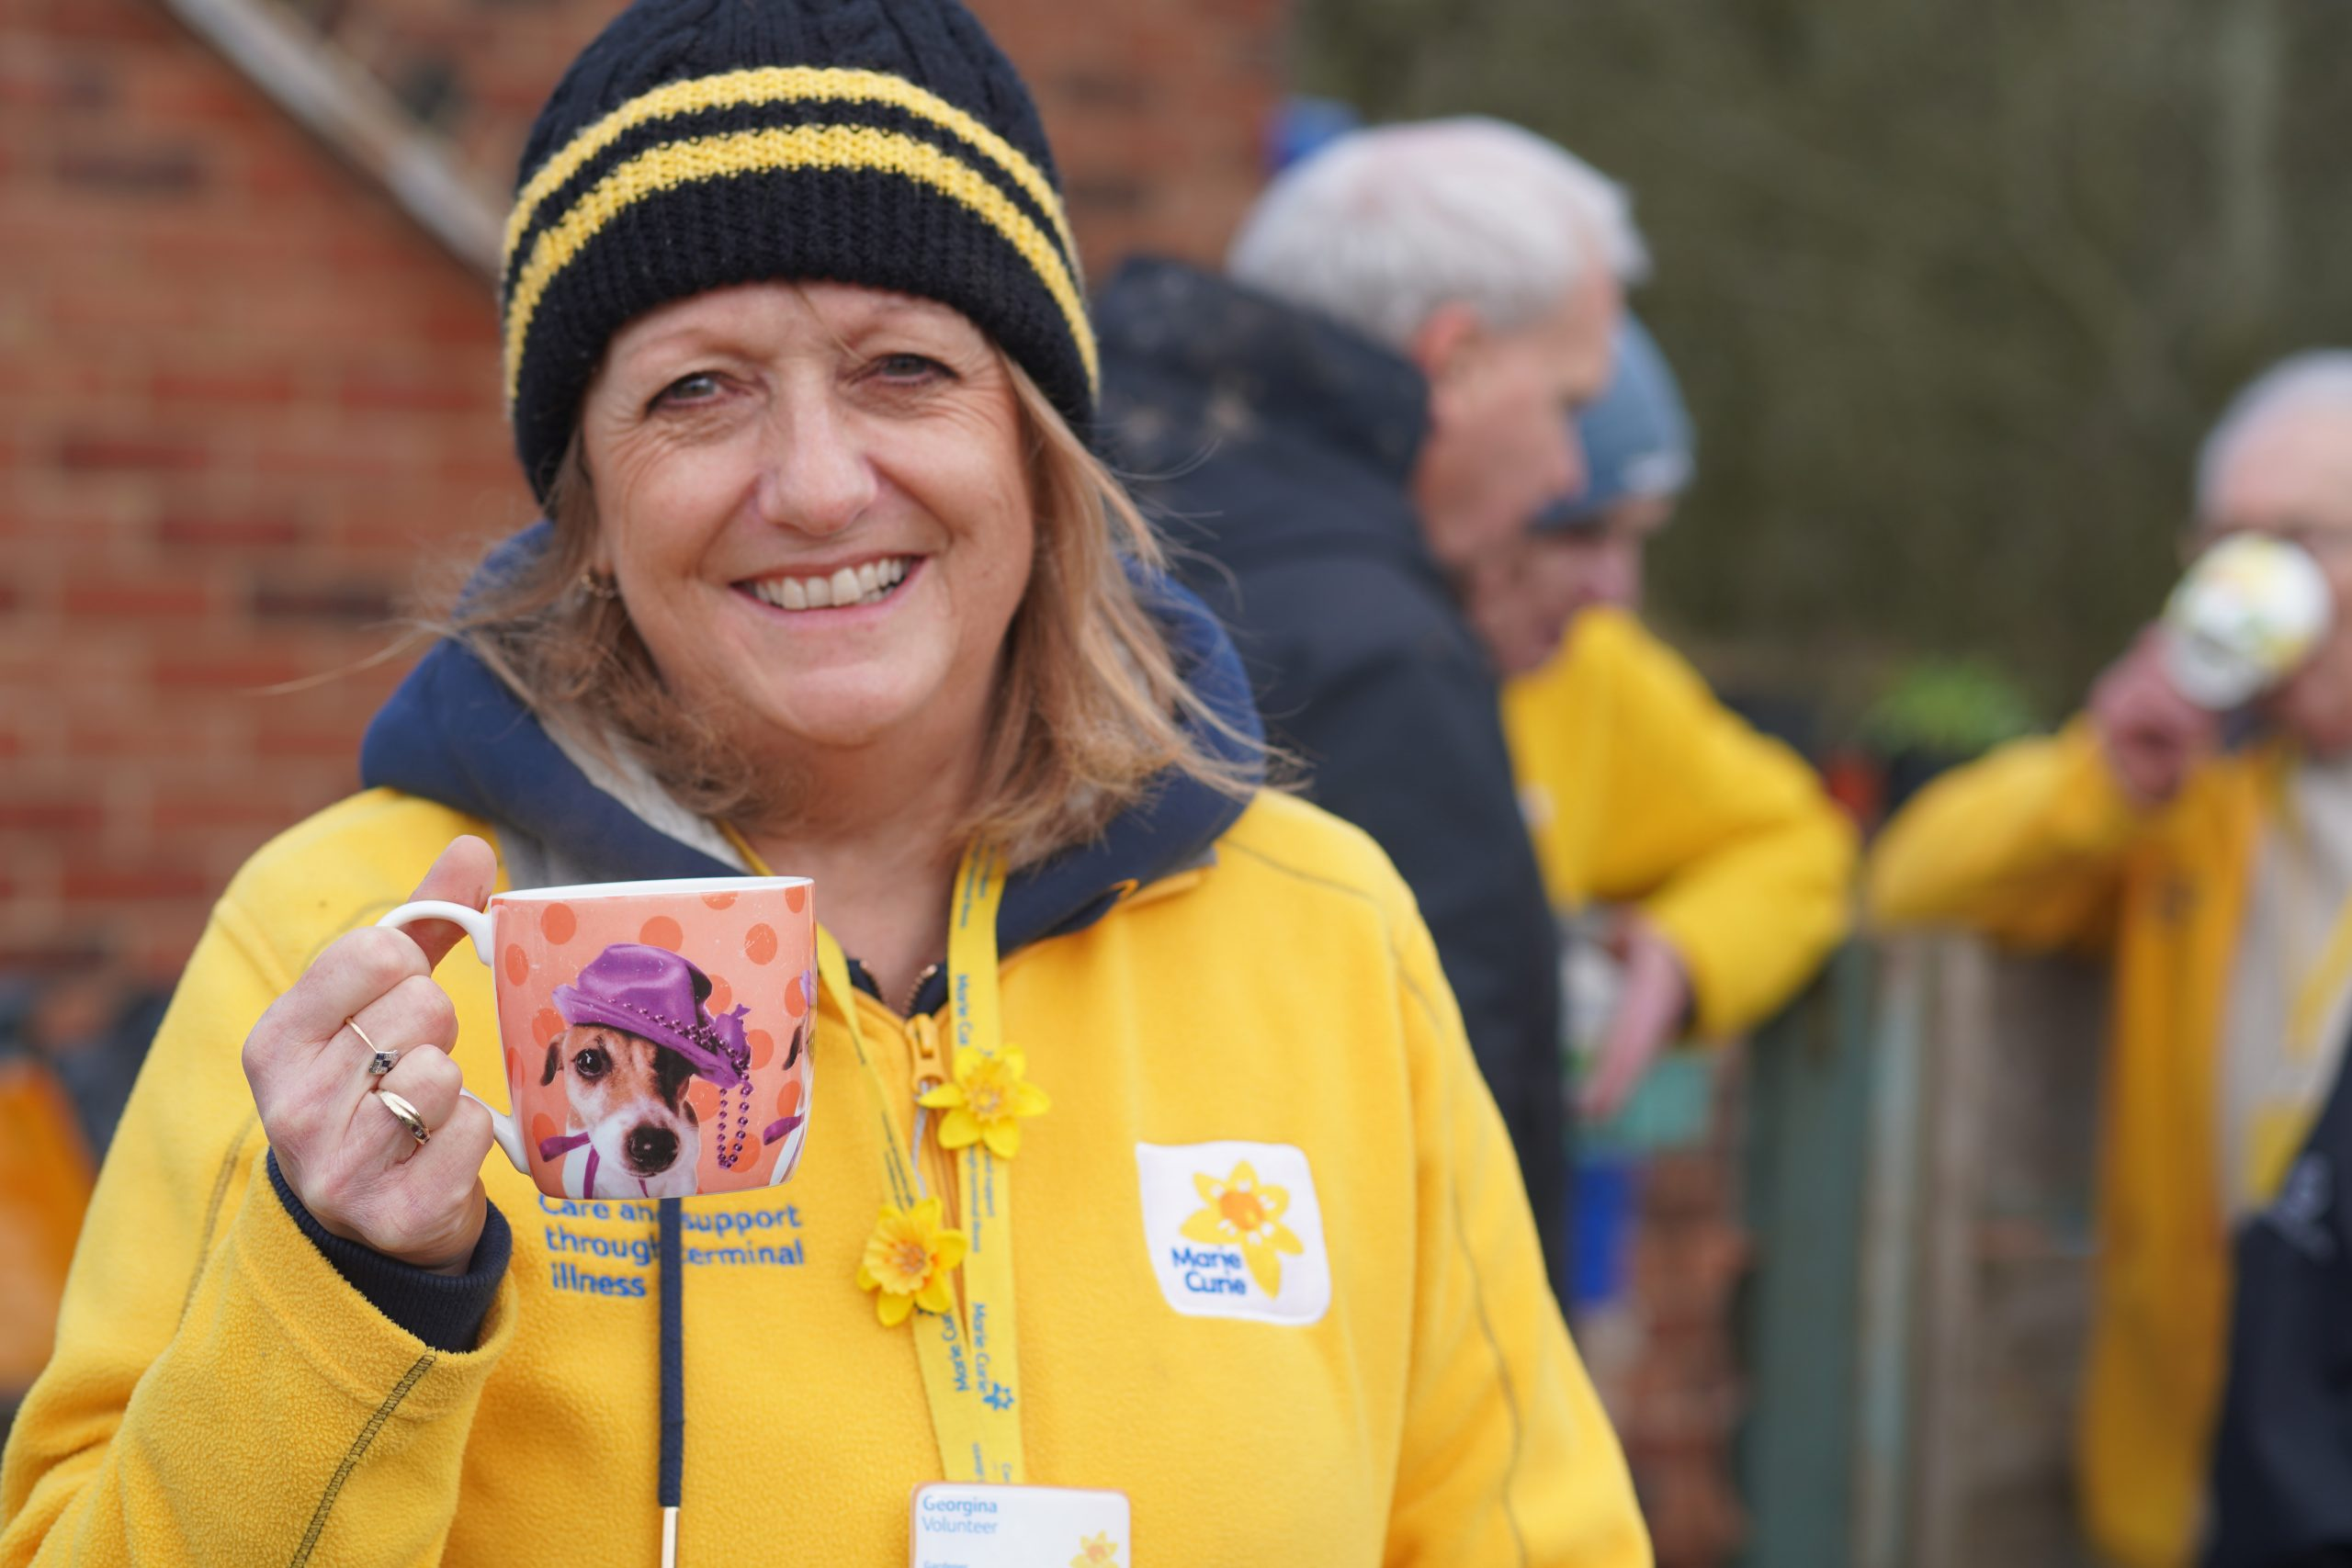 Marie Curie volunteer Solihull